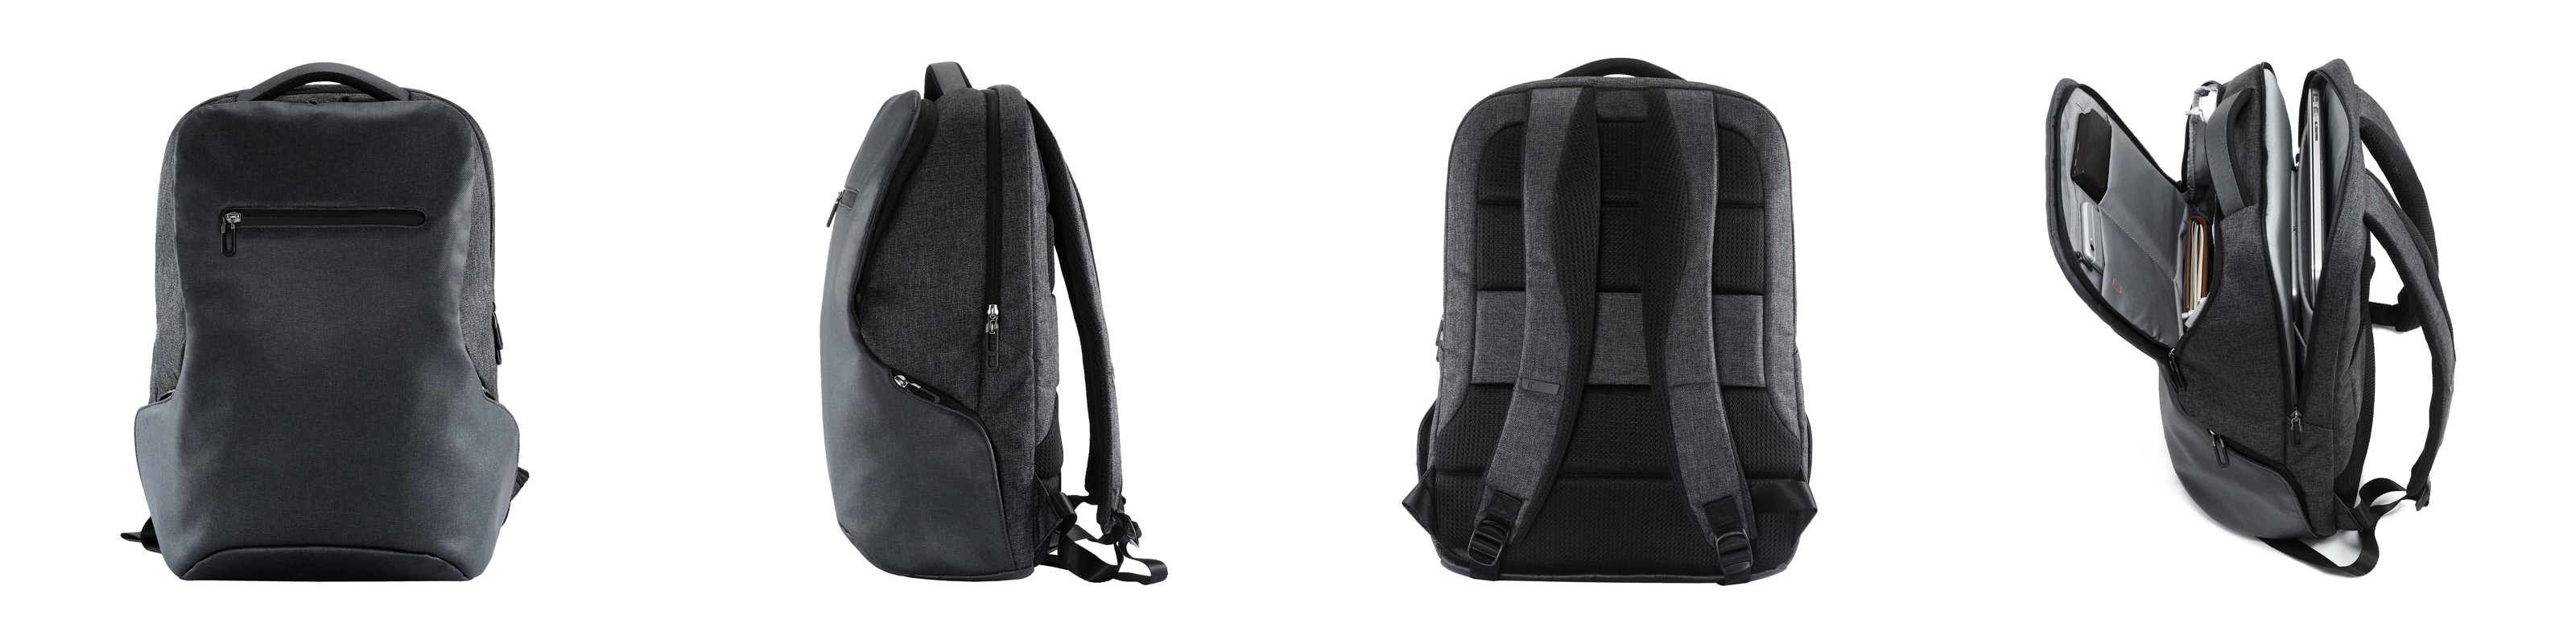 xiaomi mi 26 l travel business backpack notebook t2